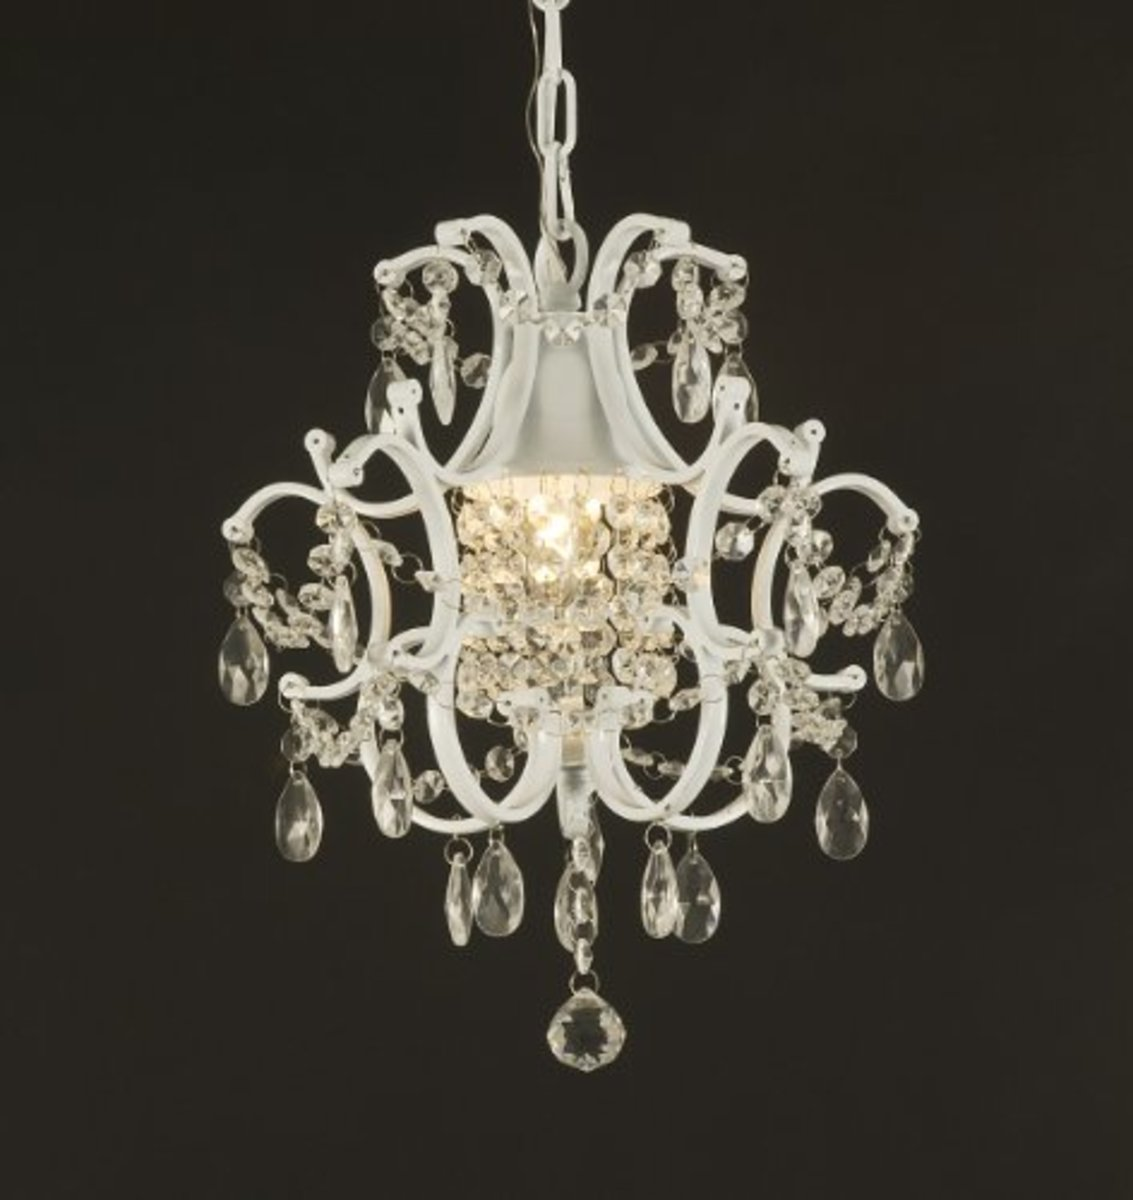 White Mini Wrought Iron Bathroom Chandelier with Crystals